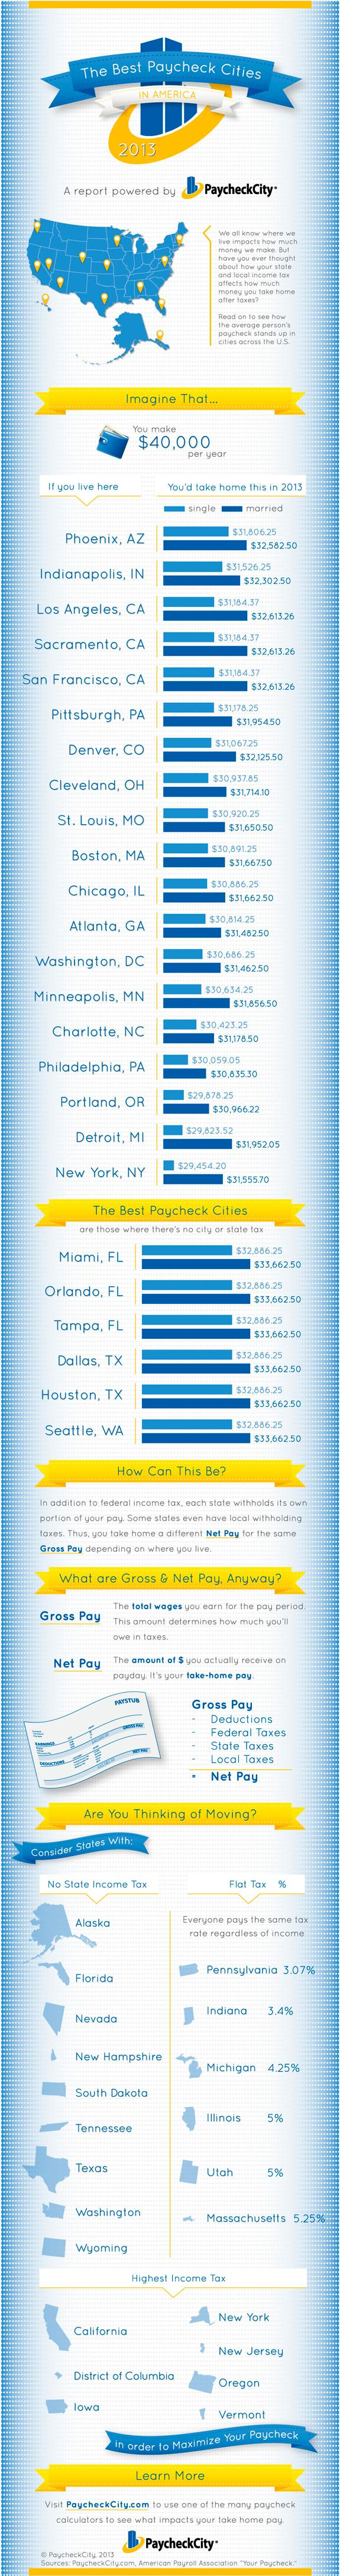 The Best Paycheck Cities in America 2013 Infographic